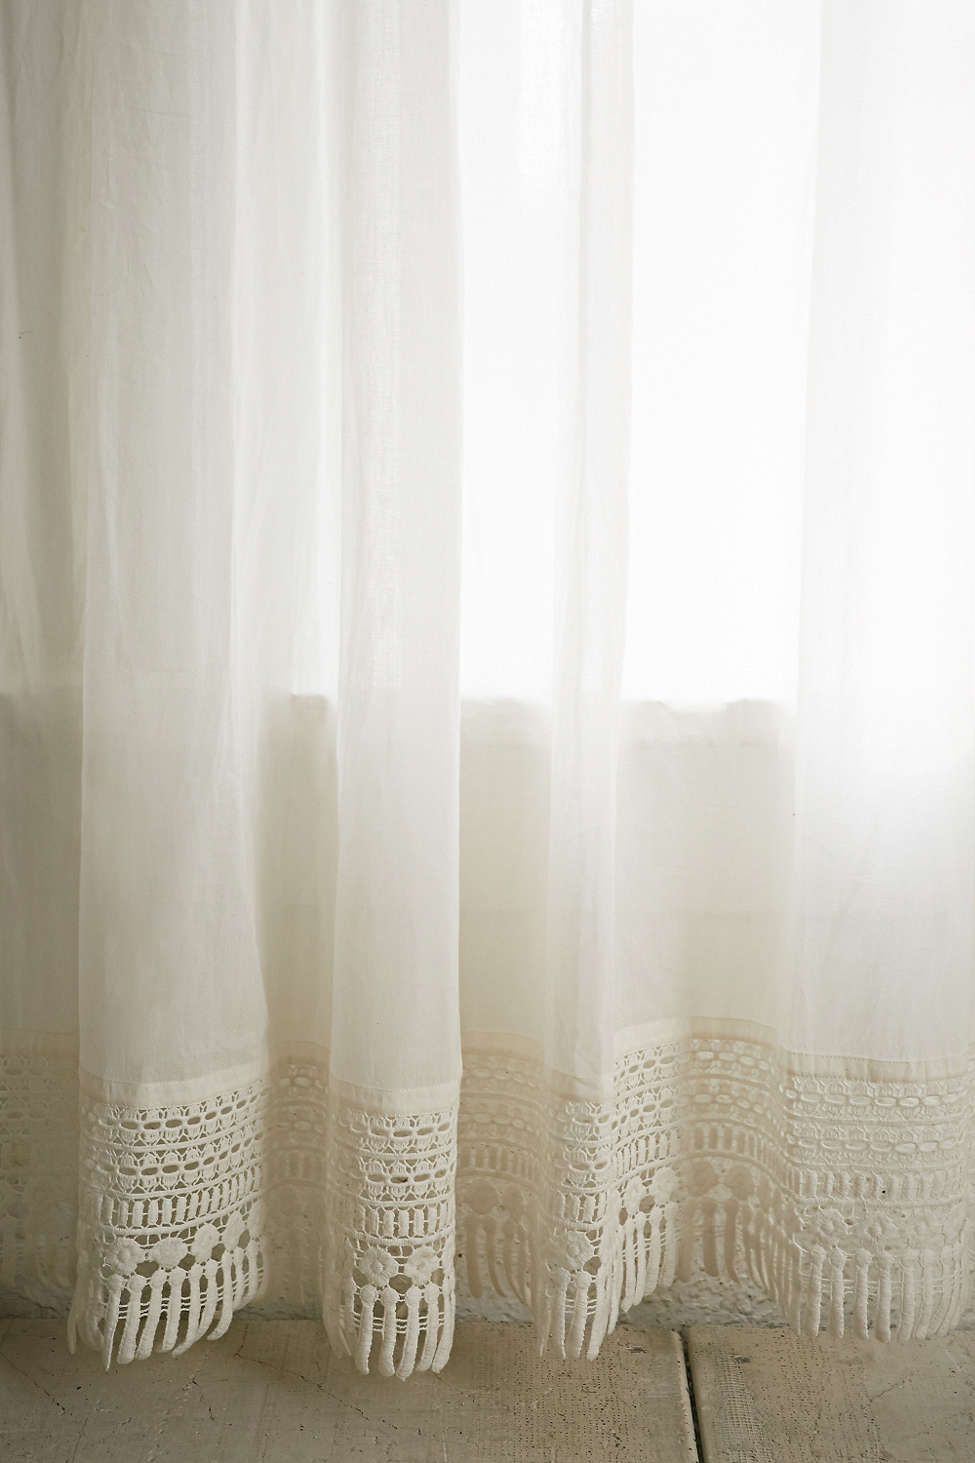 Lace Bedroom Curtains Plum Bow Crochet Trim Curtain Urban Outfitters The Old And